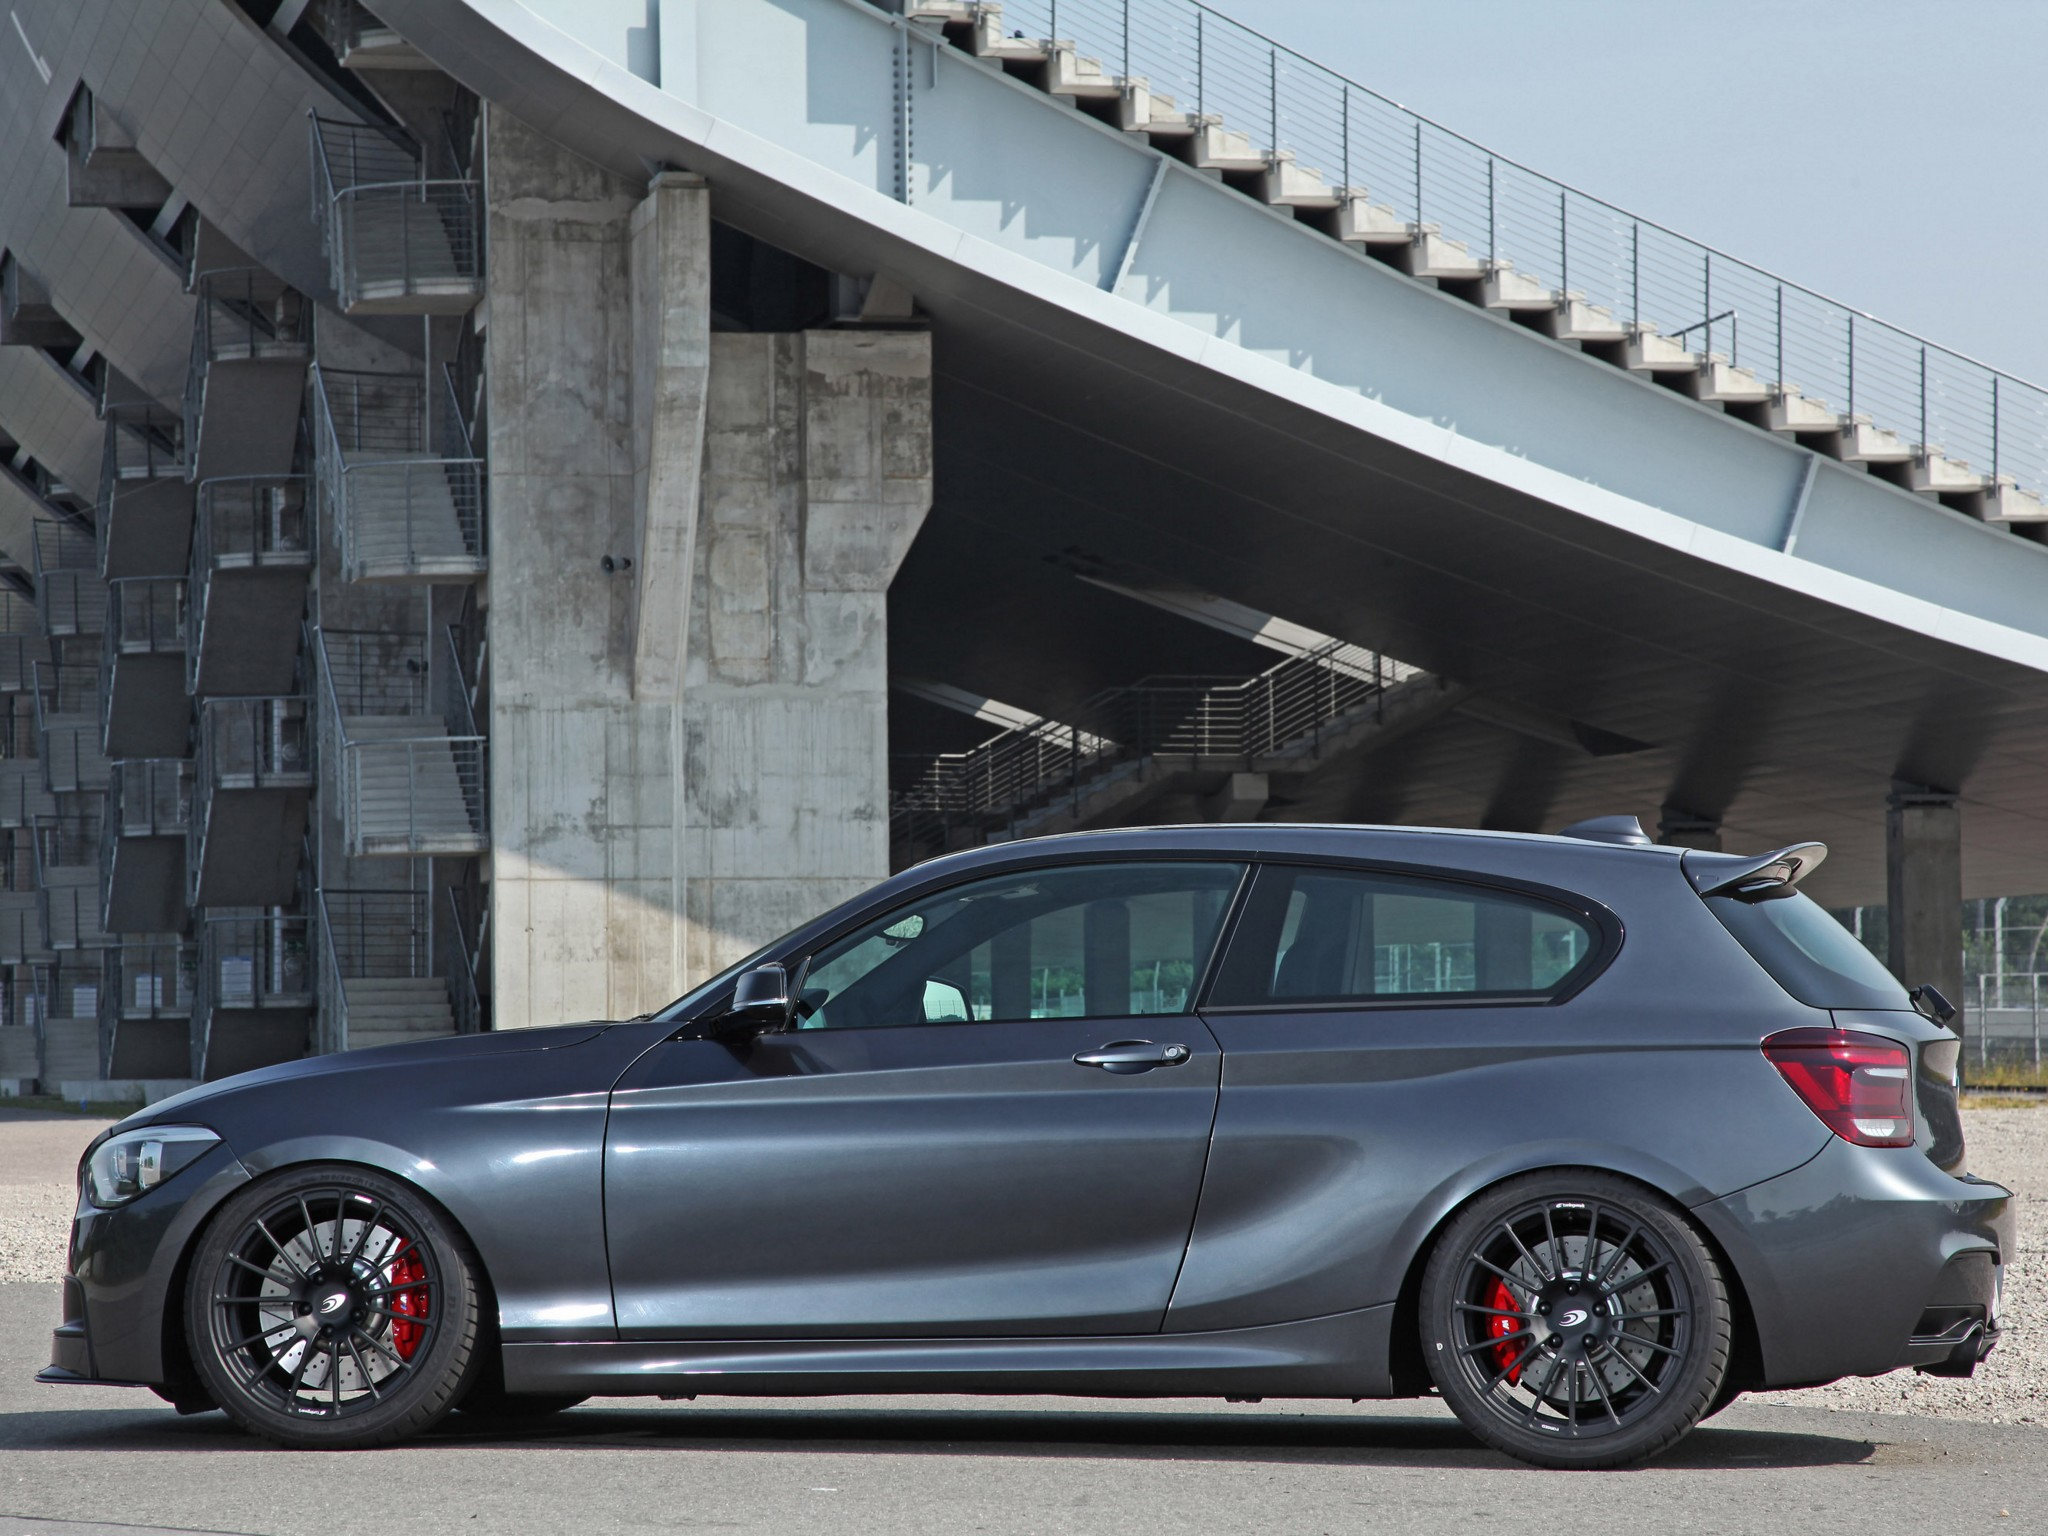 2013 tuningwerk bmw m135i 3 door f21 tuning fs wallpaper. Black Bedroom Furniture Sets. Home Design Ideas